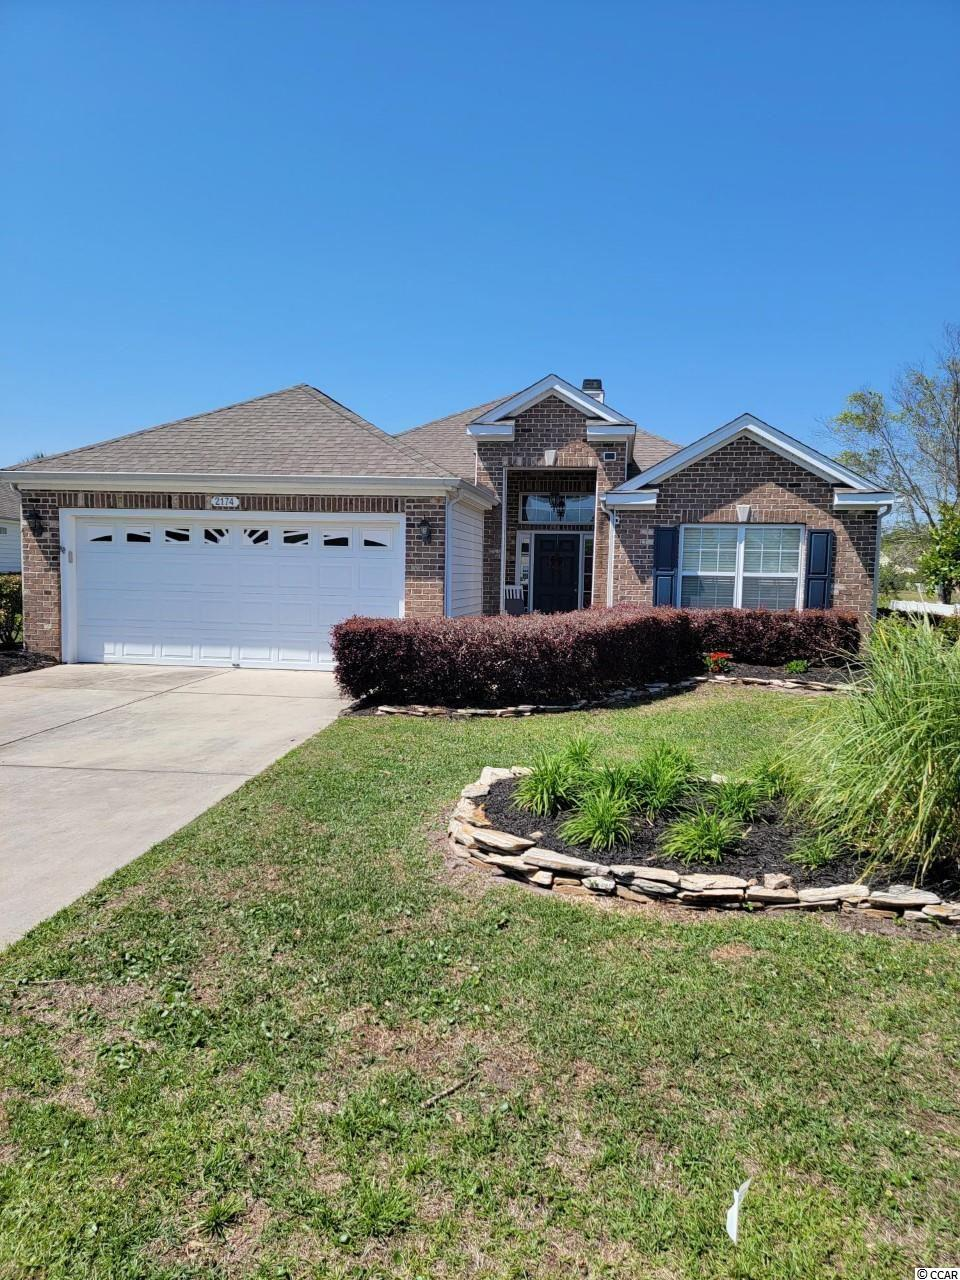 OPEN HOUSE FRIDAY 4/30/21 1:00-5:00 This home is a must see!  Large lot with an outstanding pond view, great sized screened in porch, 3 bedroom 2 bath spacious all on one floor.  The 2 car garage was extended as well as the front bedroom.